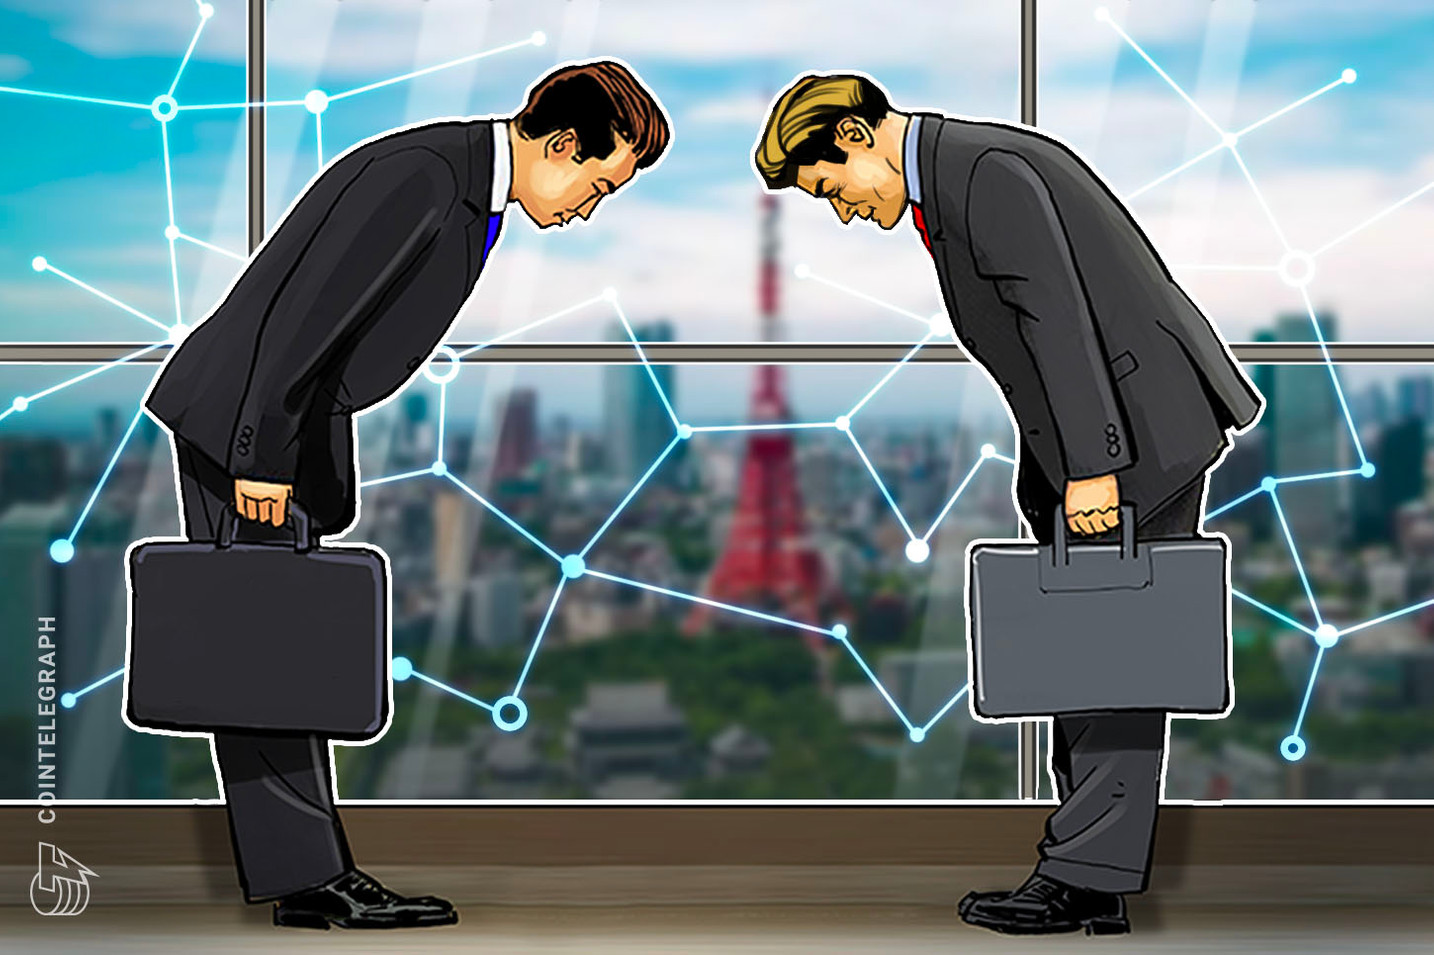 Japan: Major Messenger LINE Partners with Financial Giant to Create Blockchain Alliance